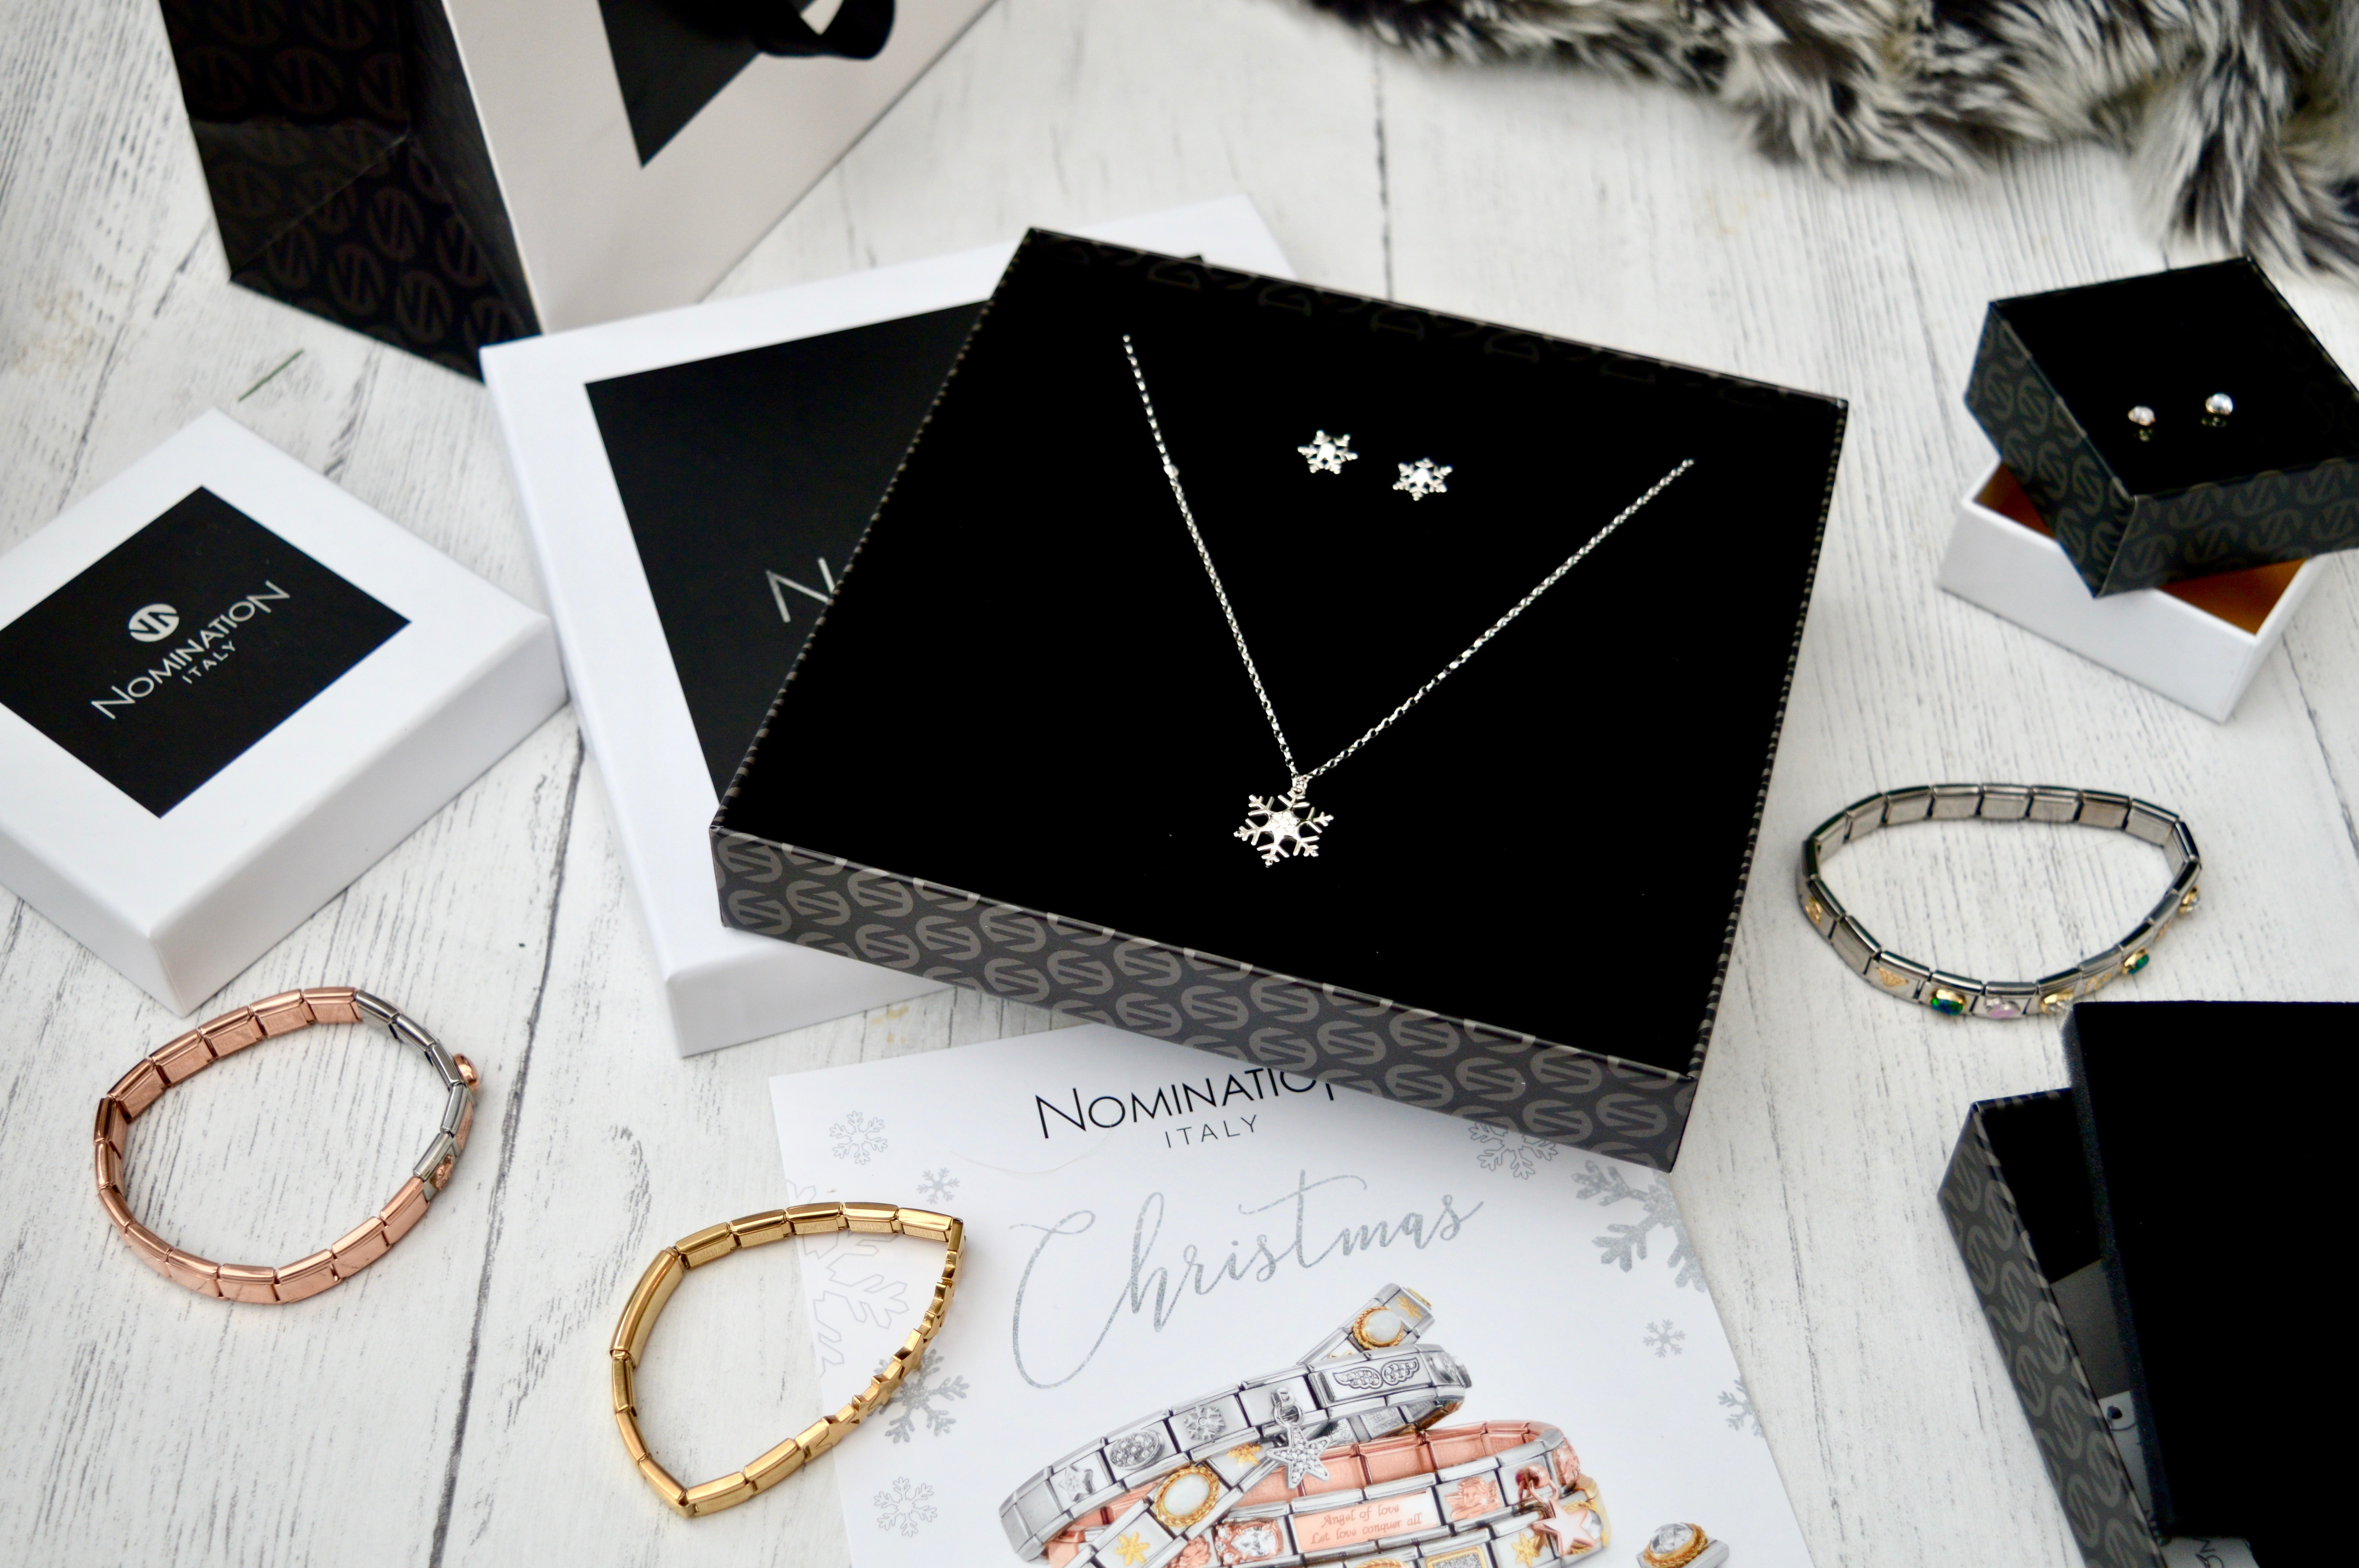 Choosing Personal Christmas Gifts For Her With Nomination 2